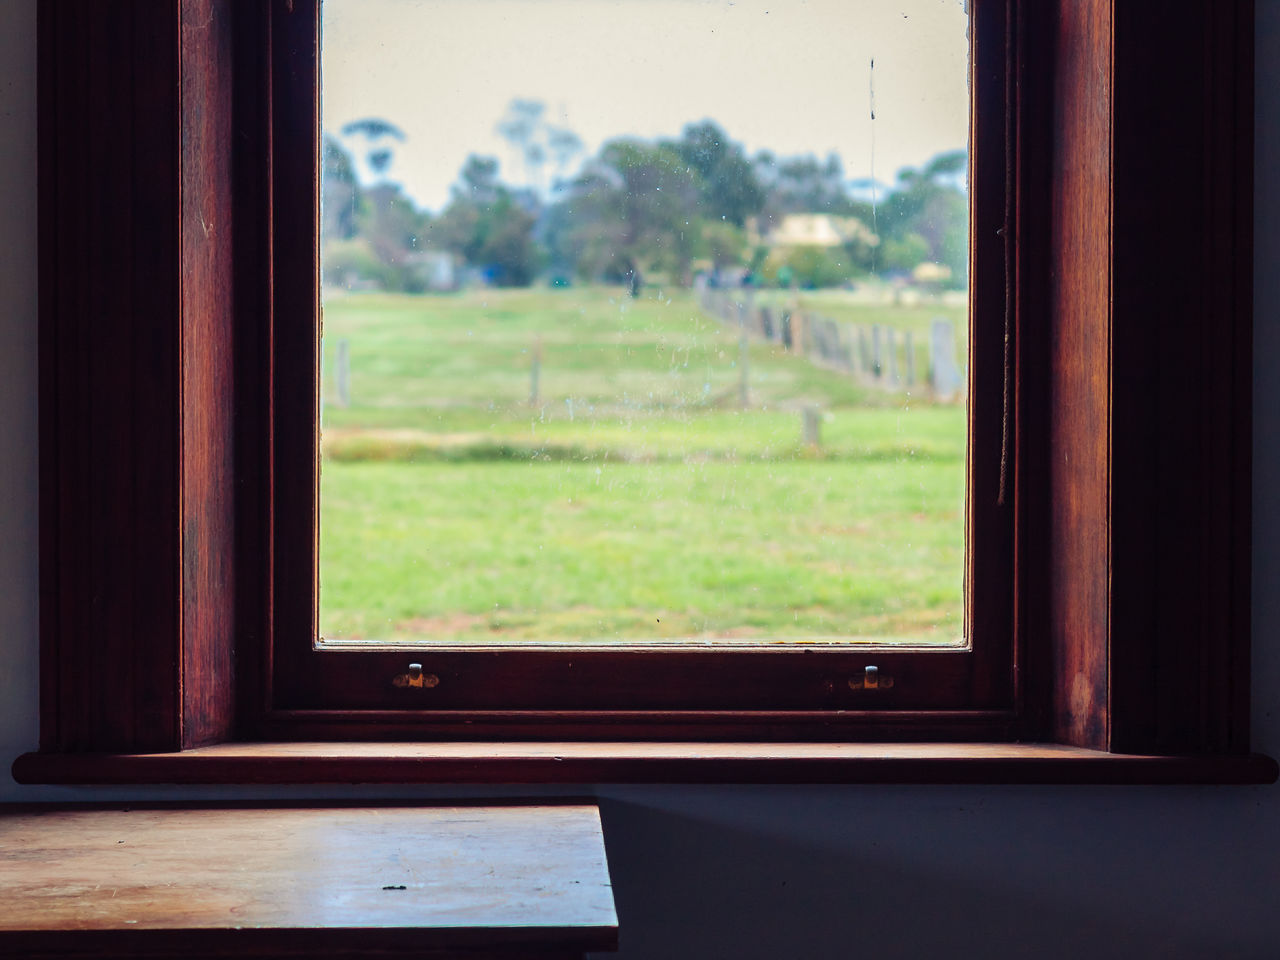 window, indoors, no people, day, focus on foreground, green color, close-up, nature, tree